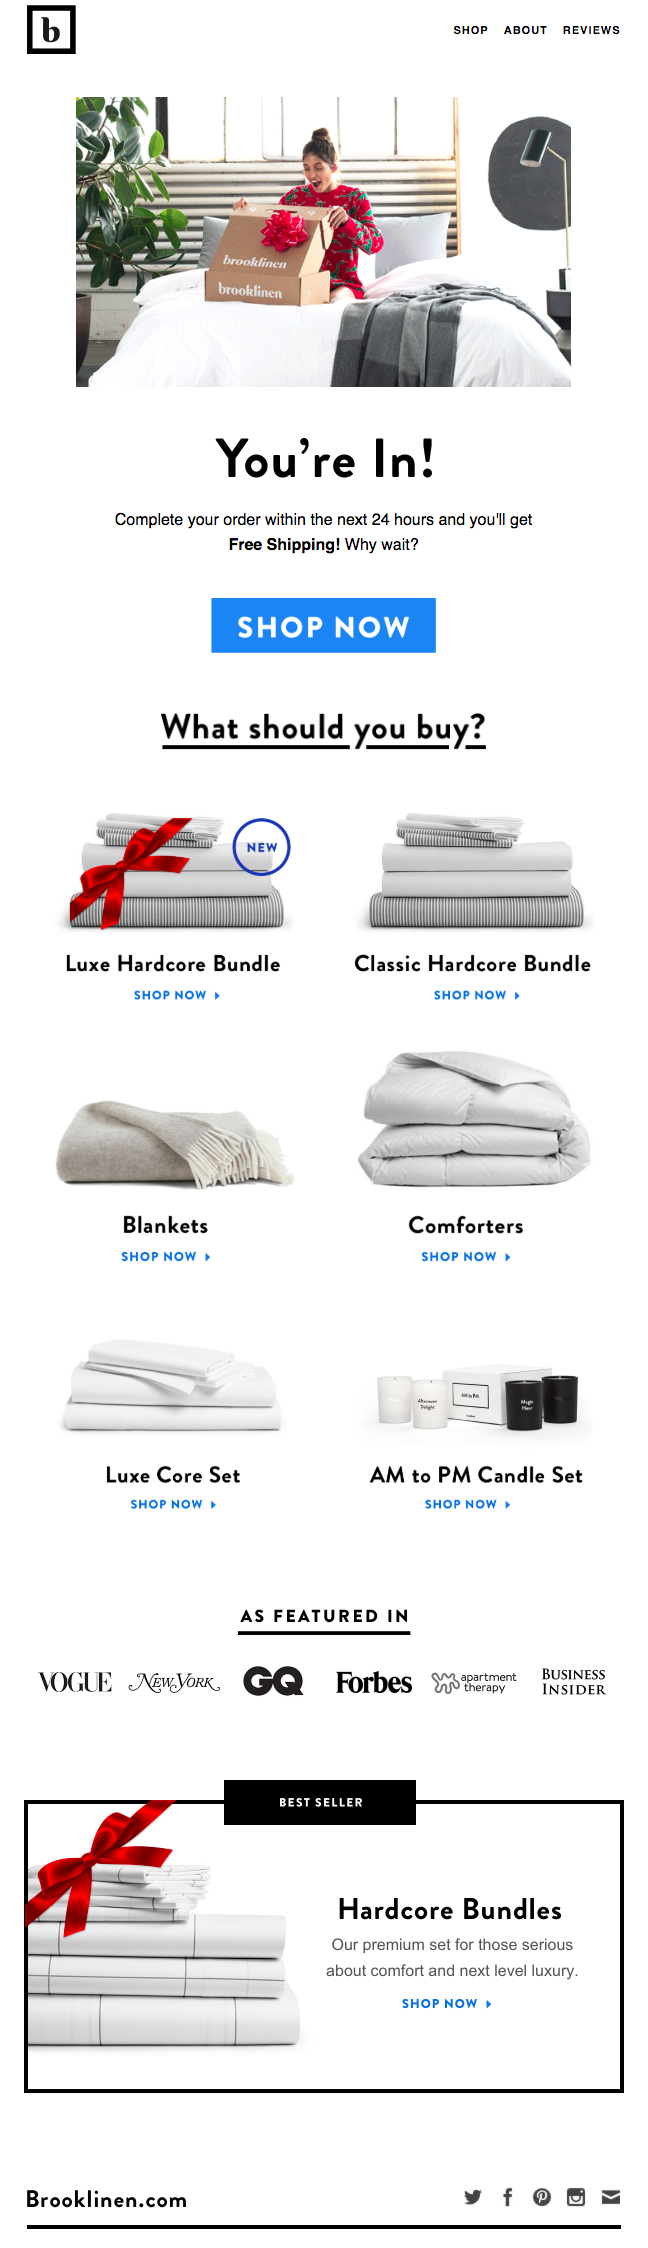 Brooklinen_Email.png